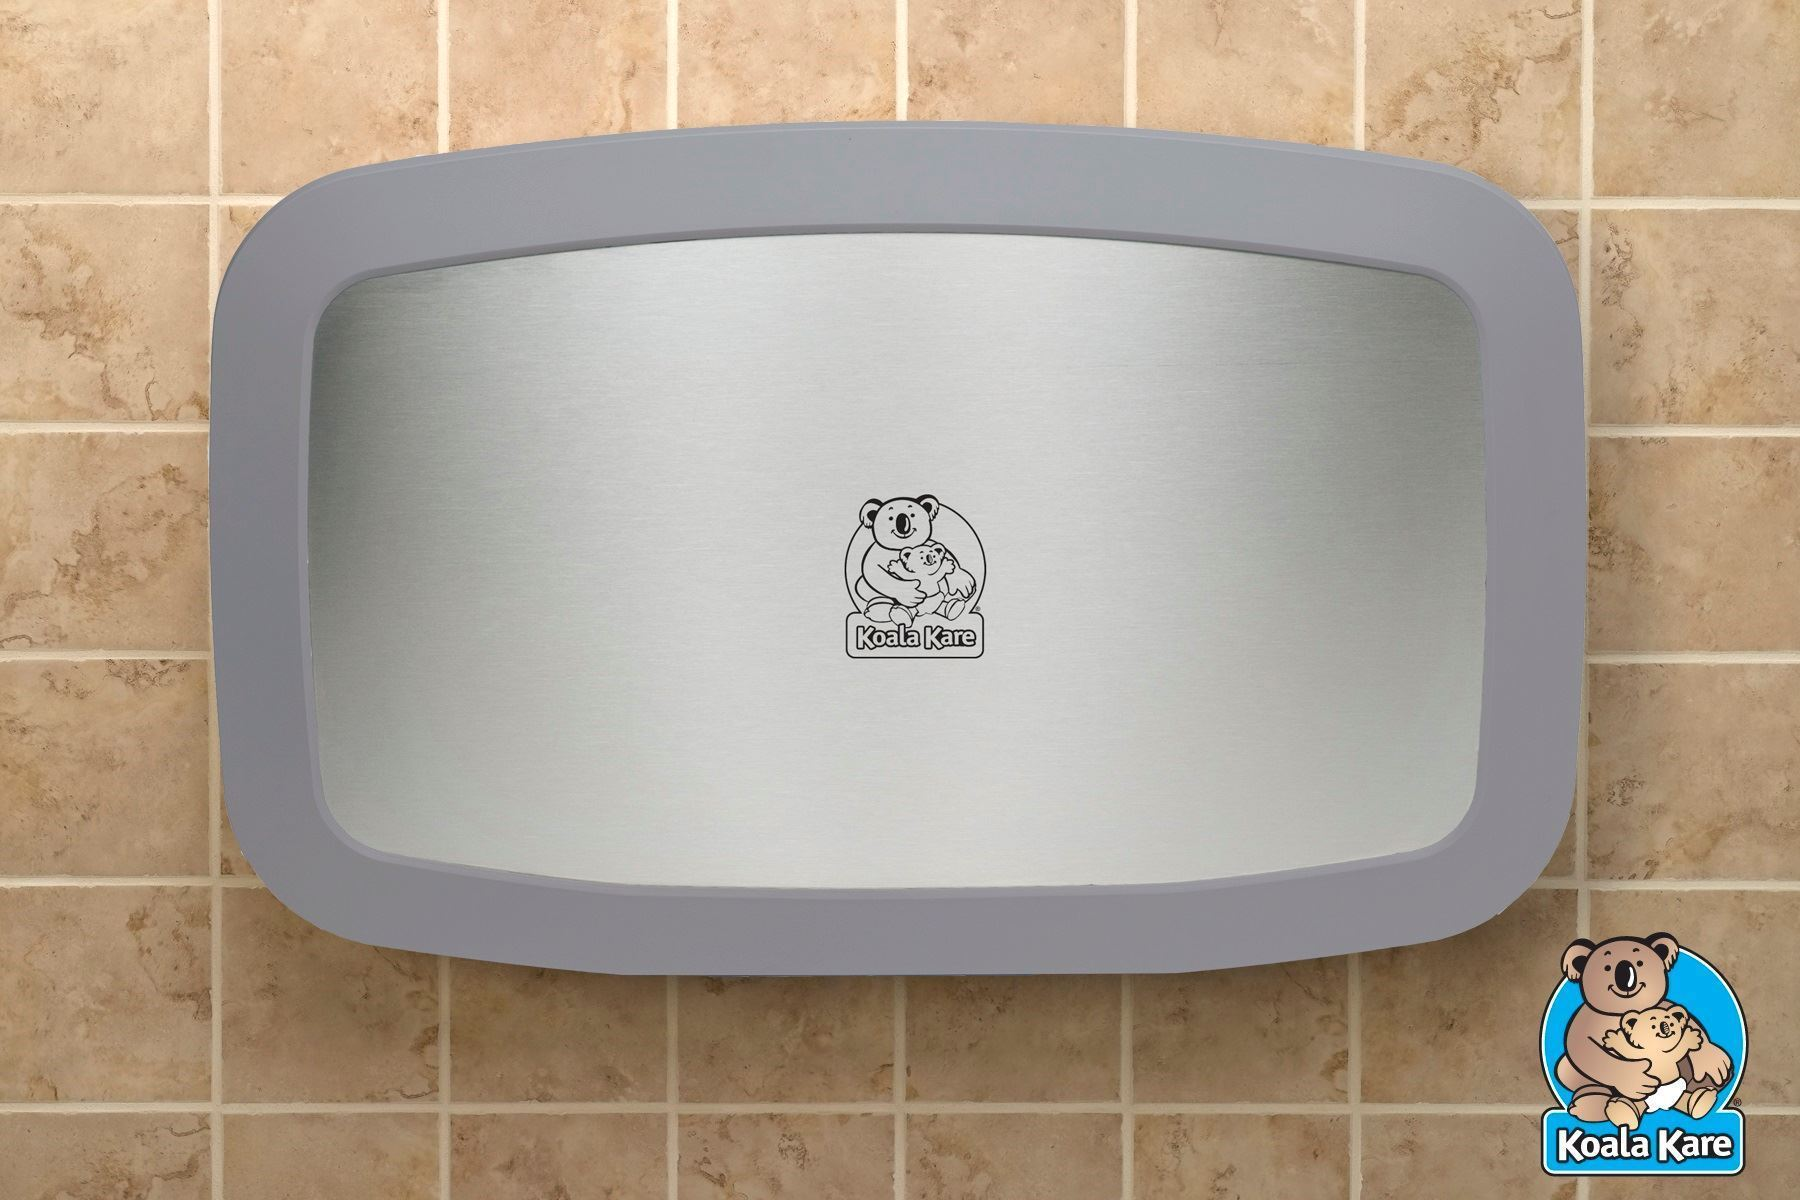 Koala Series Baby Changing Stations Allied Hand Dryer - Koala care changing table